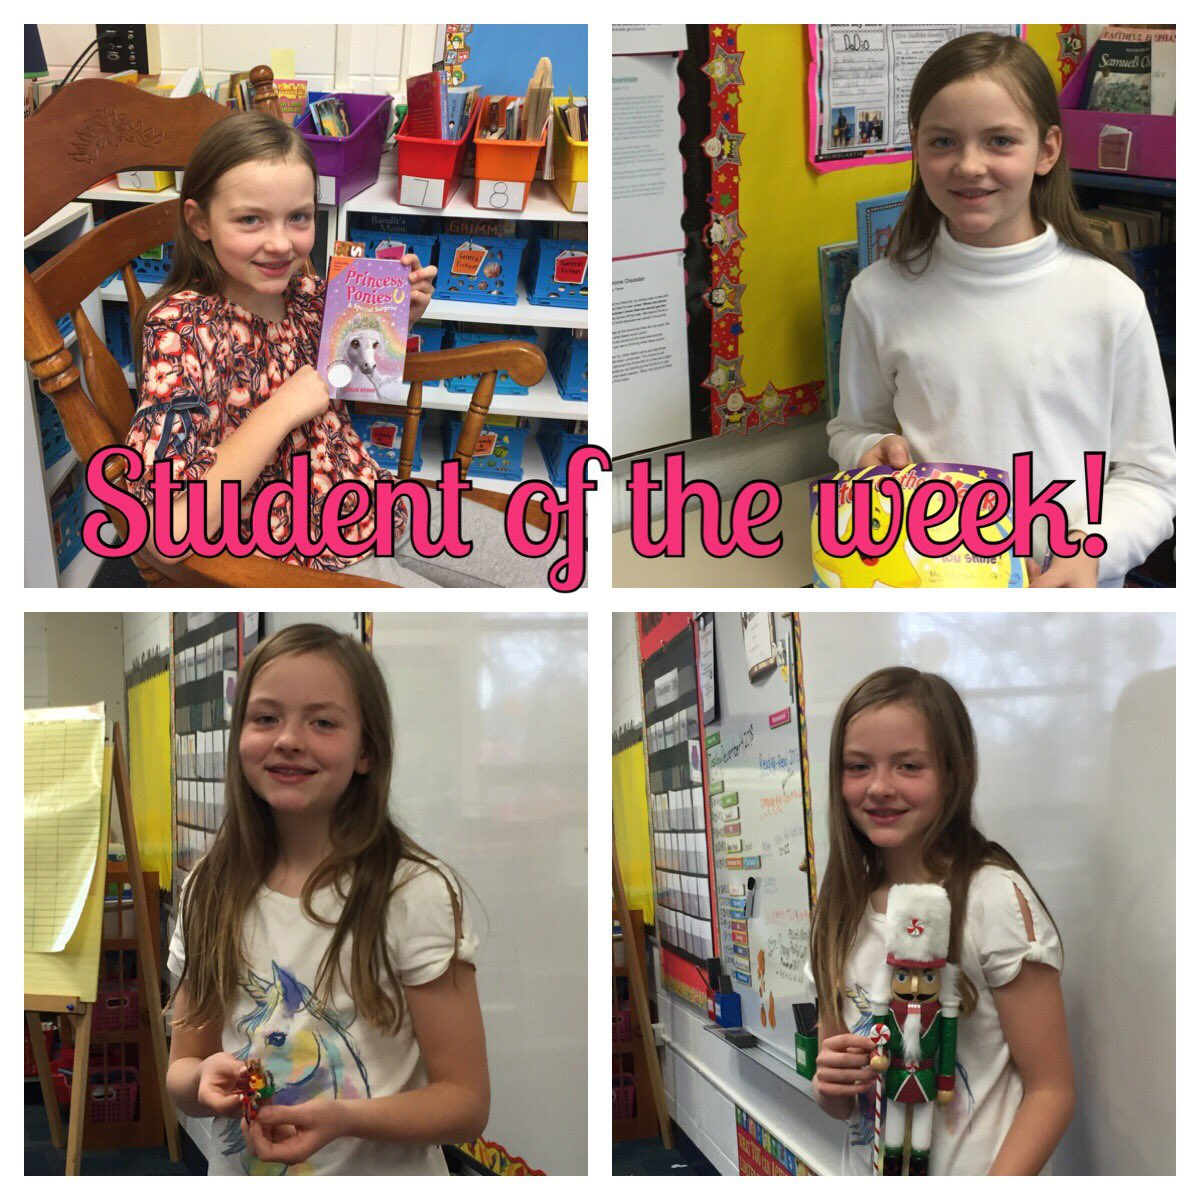 test Twitter Media - Student of the week! #d30learns https://t.co/v3VyaHbkQS